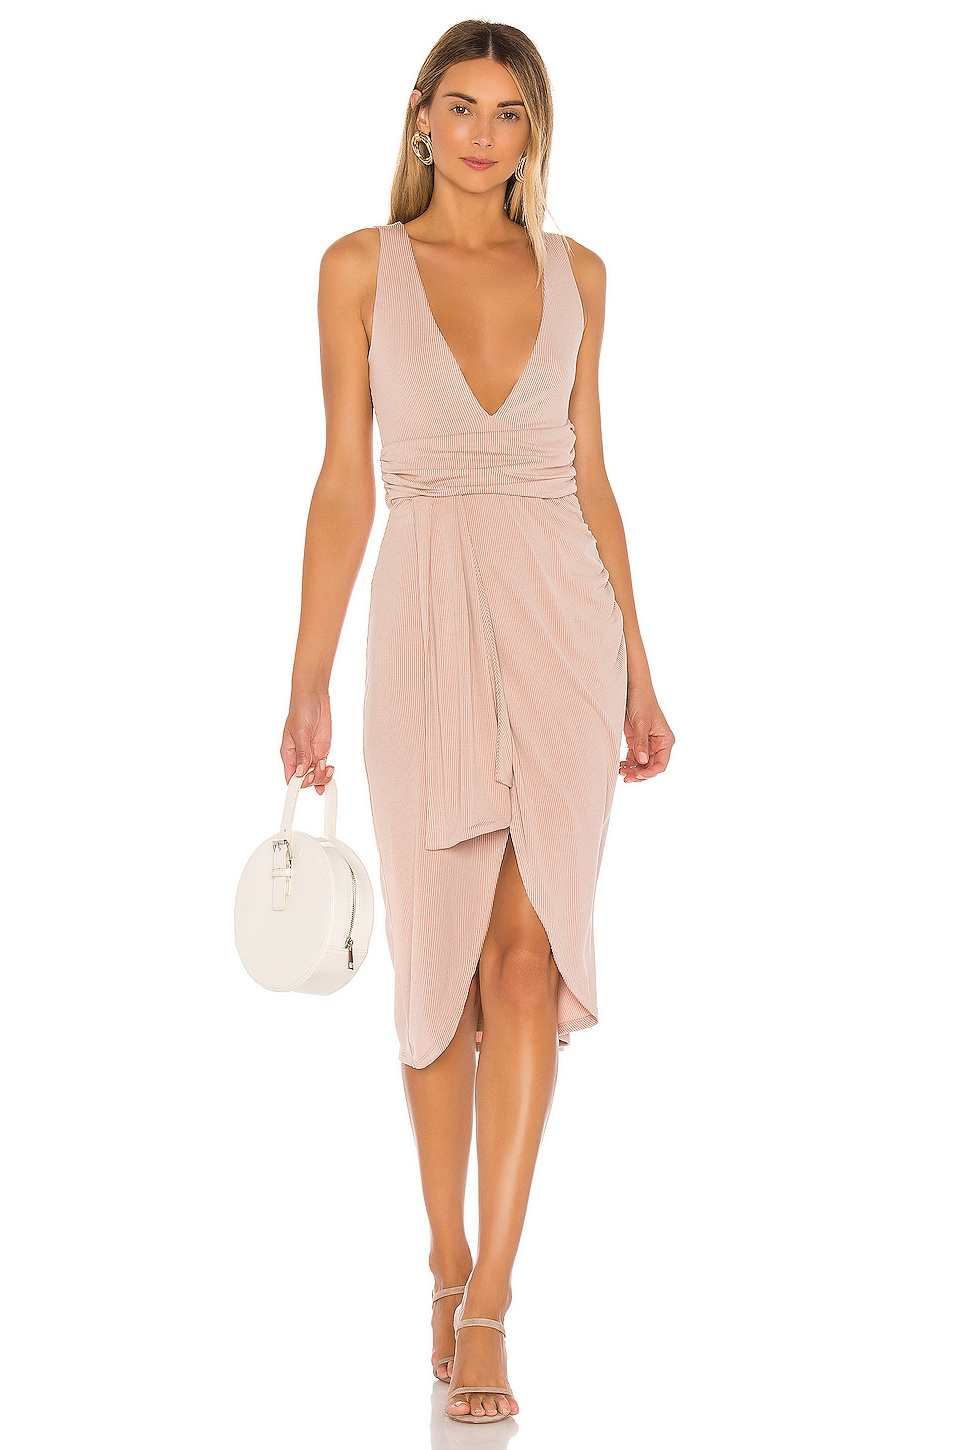 Lovers + Friends Aryana Midi Dress in Nude Stripe